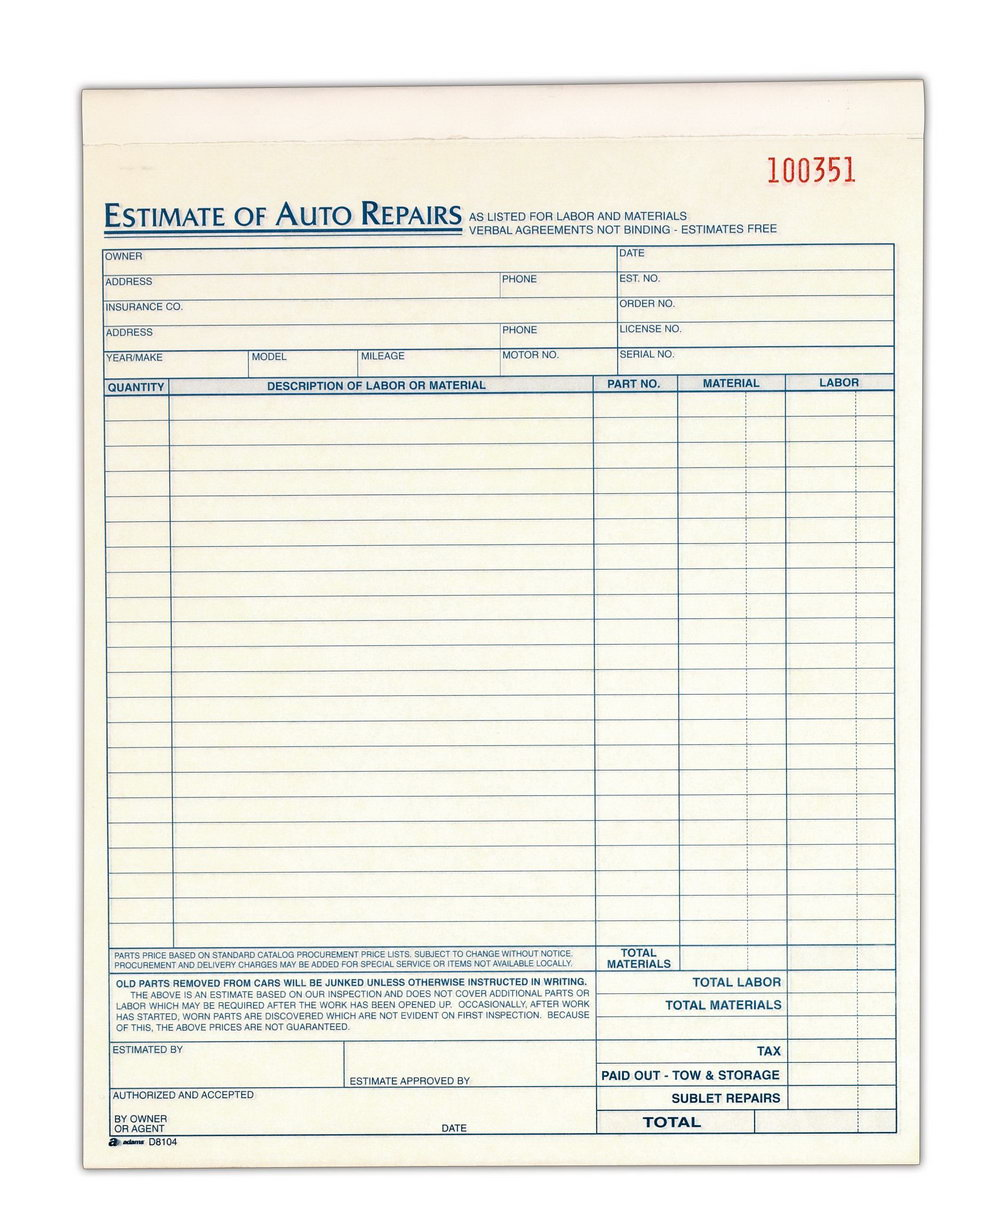 Auto Repair Estimate Template Word